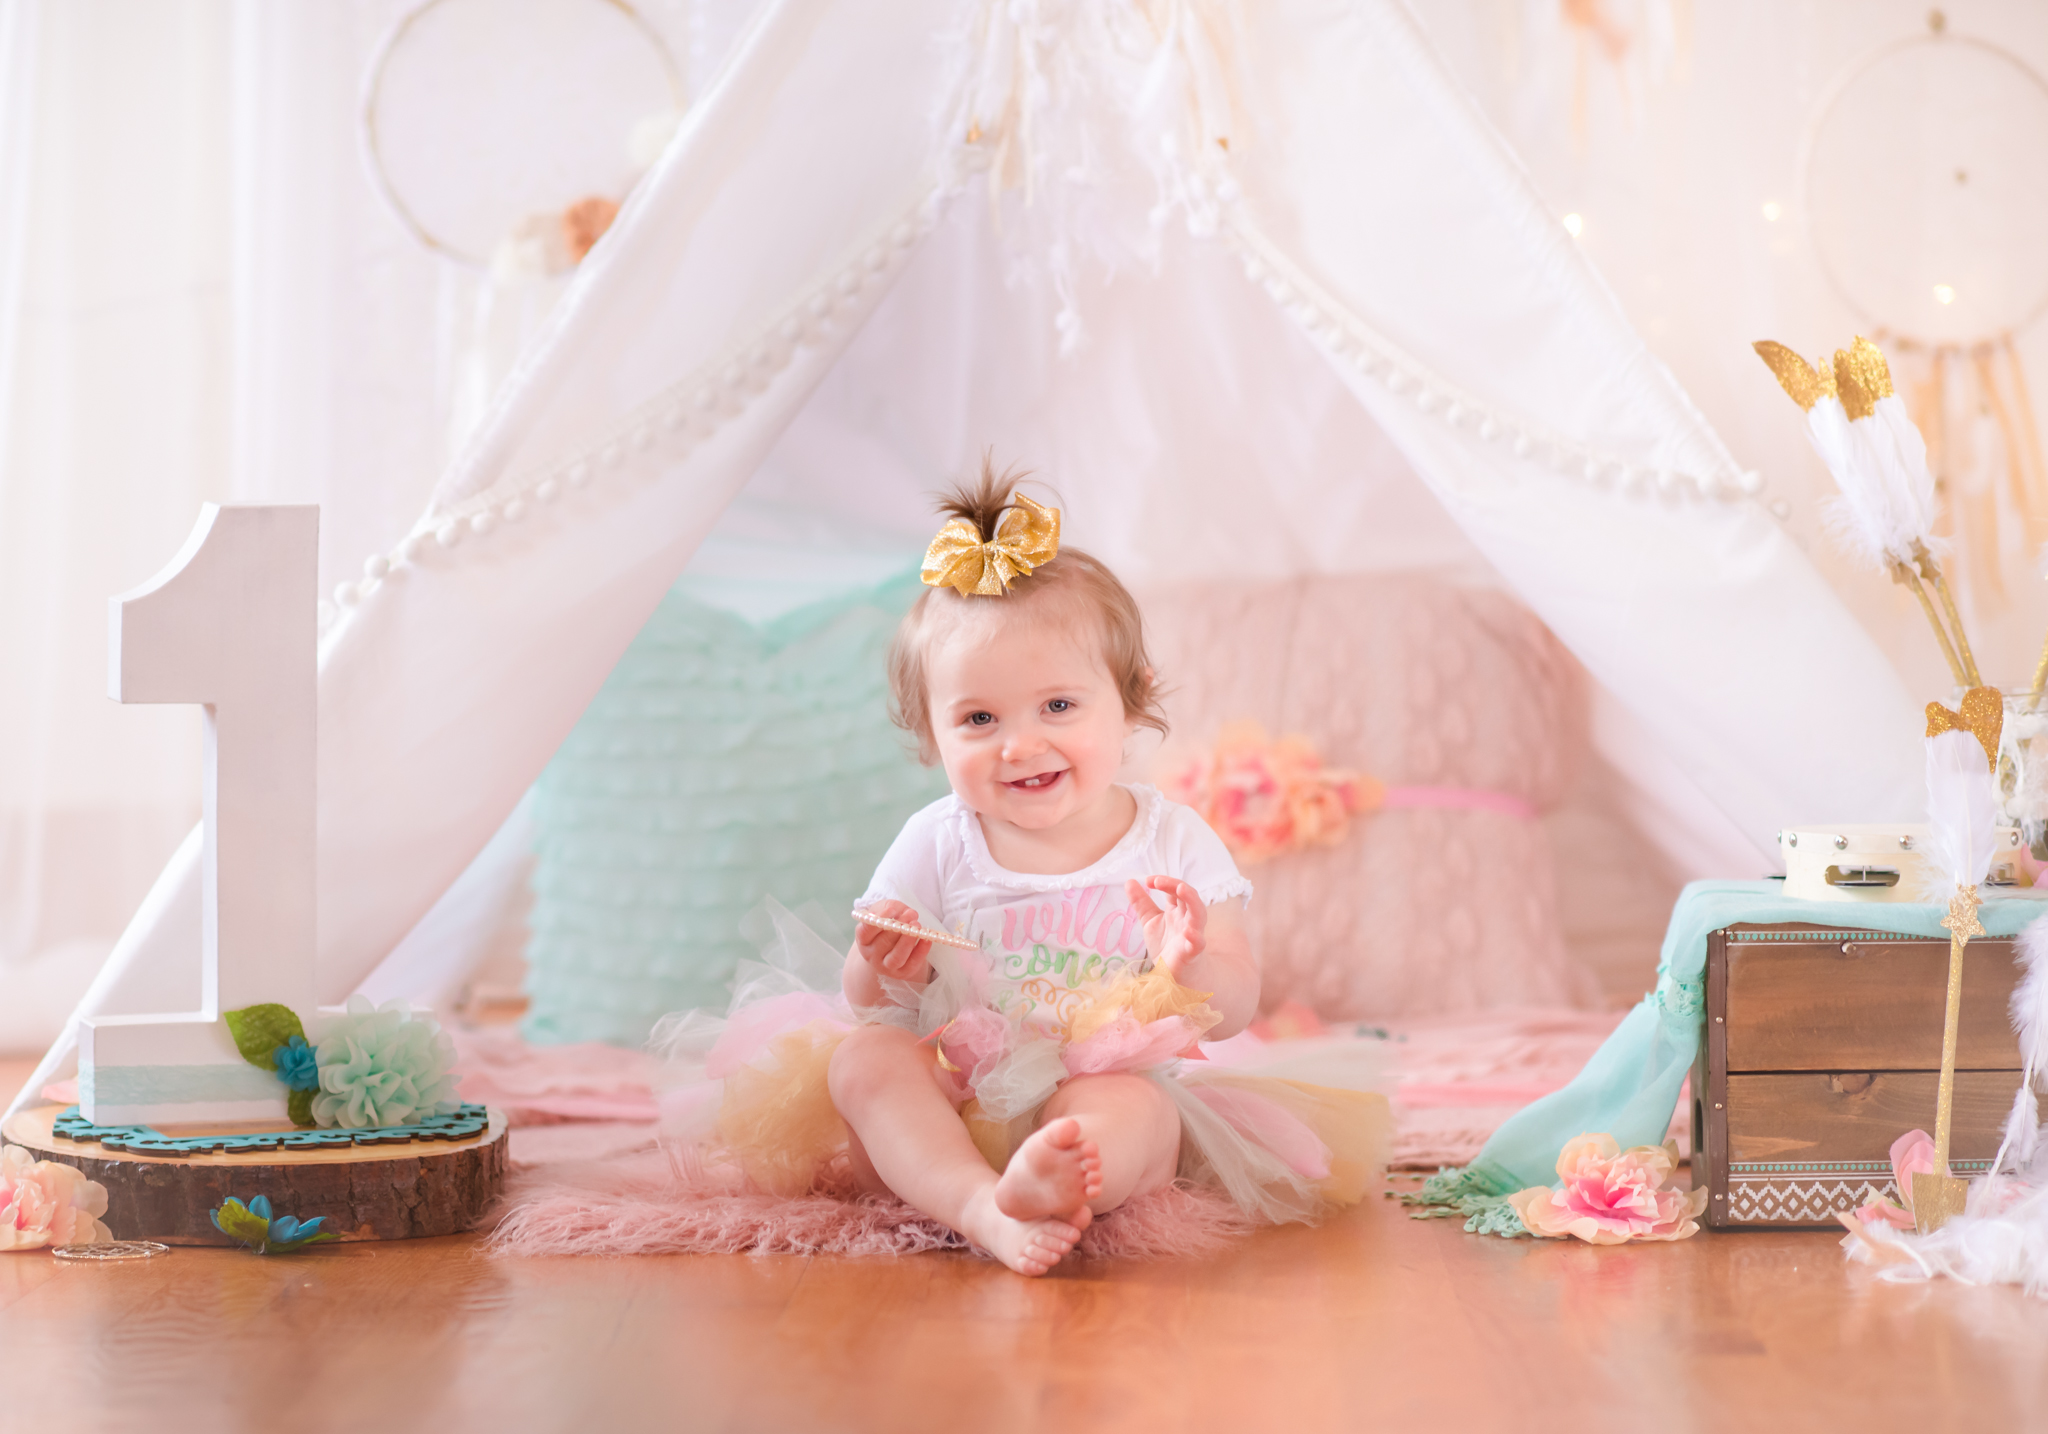 One year old girl in teepee themed styled birthday session